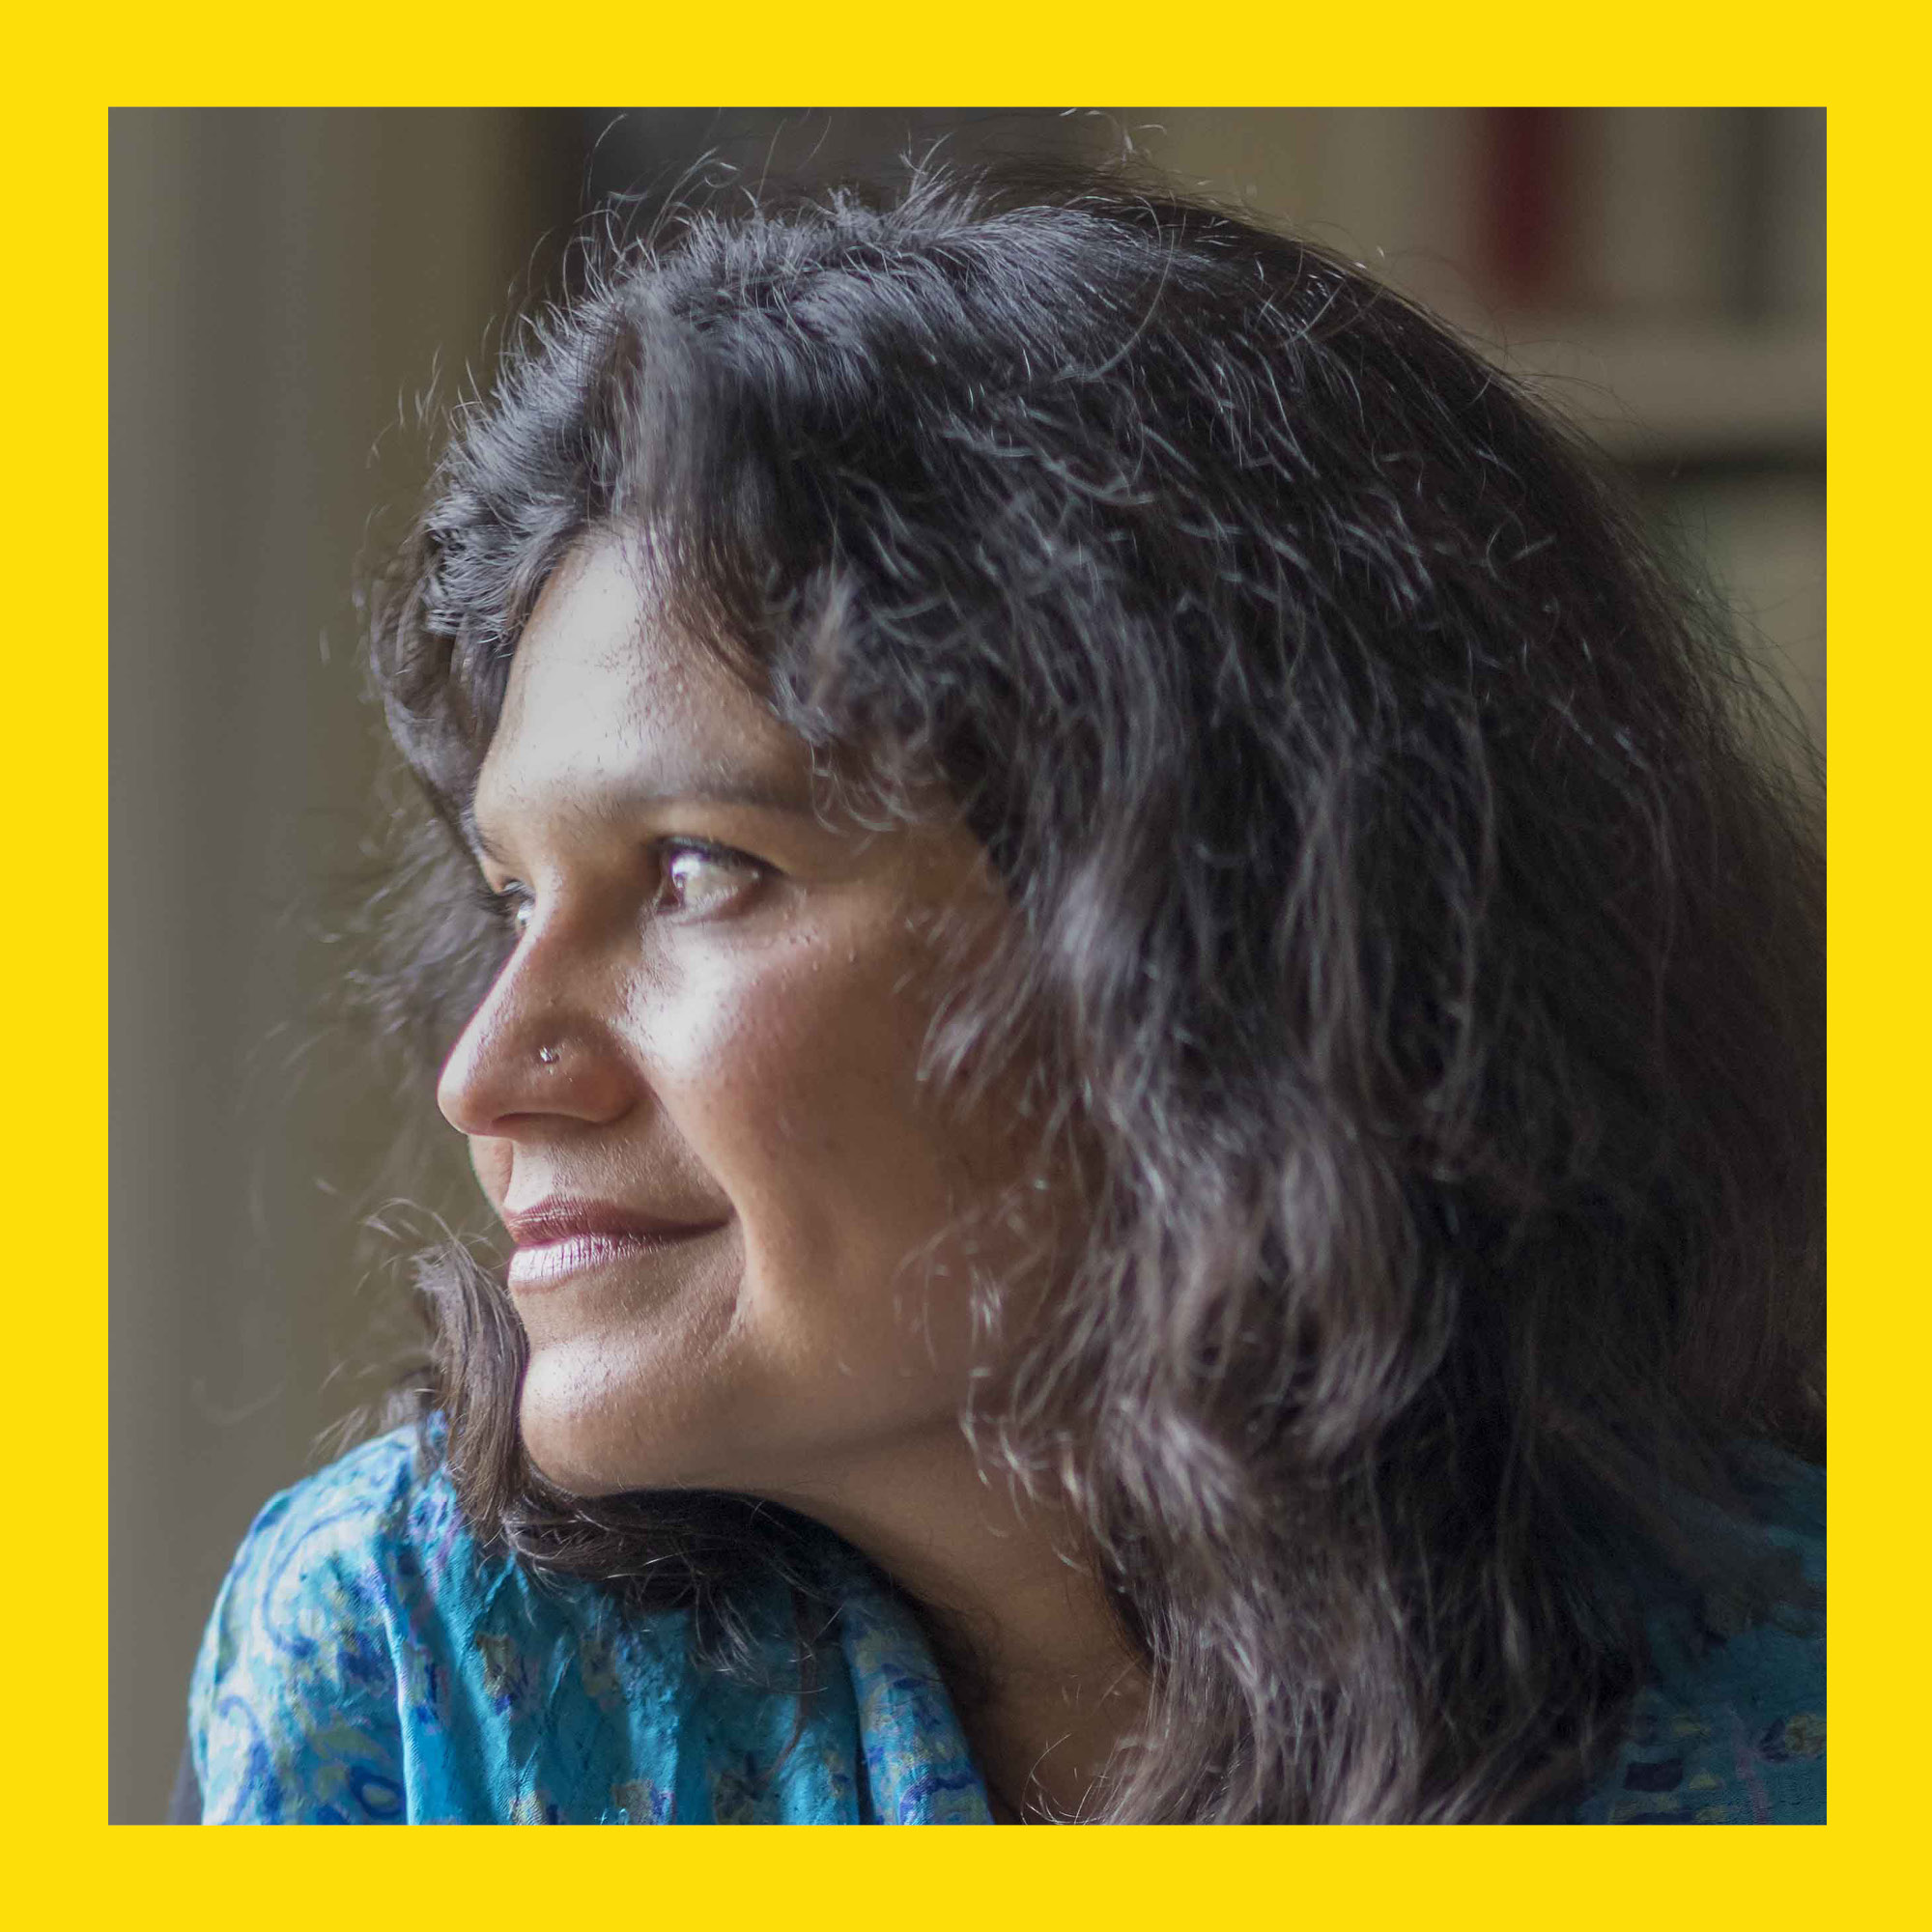 - Alpa Shah was raised in Nairobi, studied at Cambridge and completed her PhD at LSE where she now teaches anthropology. She is the author of Nightmarch: Among India's Revolutionary Guerrillas (2018), In the Shadows of the State: Indigenous Politics, Environmentalism and Insurgency in Jharkhand, India (2010) and lead author of Ground Down by Growth: Tribe, Caste, Class and Inequality in 21st Century India (2018). She has made a documentary on 'India's Red Belt' for BBC Radio 4's 'Crossing Continents' and featured on other BBC radio programmes including ''From Our Own Correspondent', 'Thinking Allowed', 'Four Thought' and 'The World Service Weekend'.